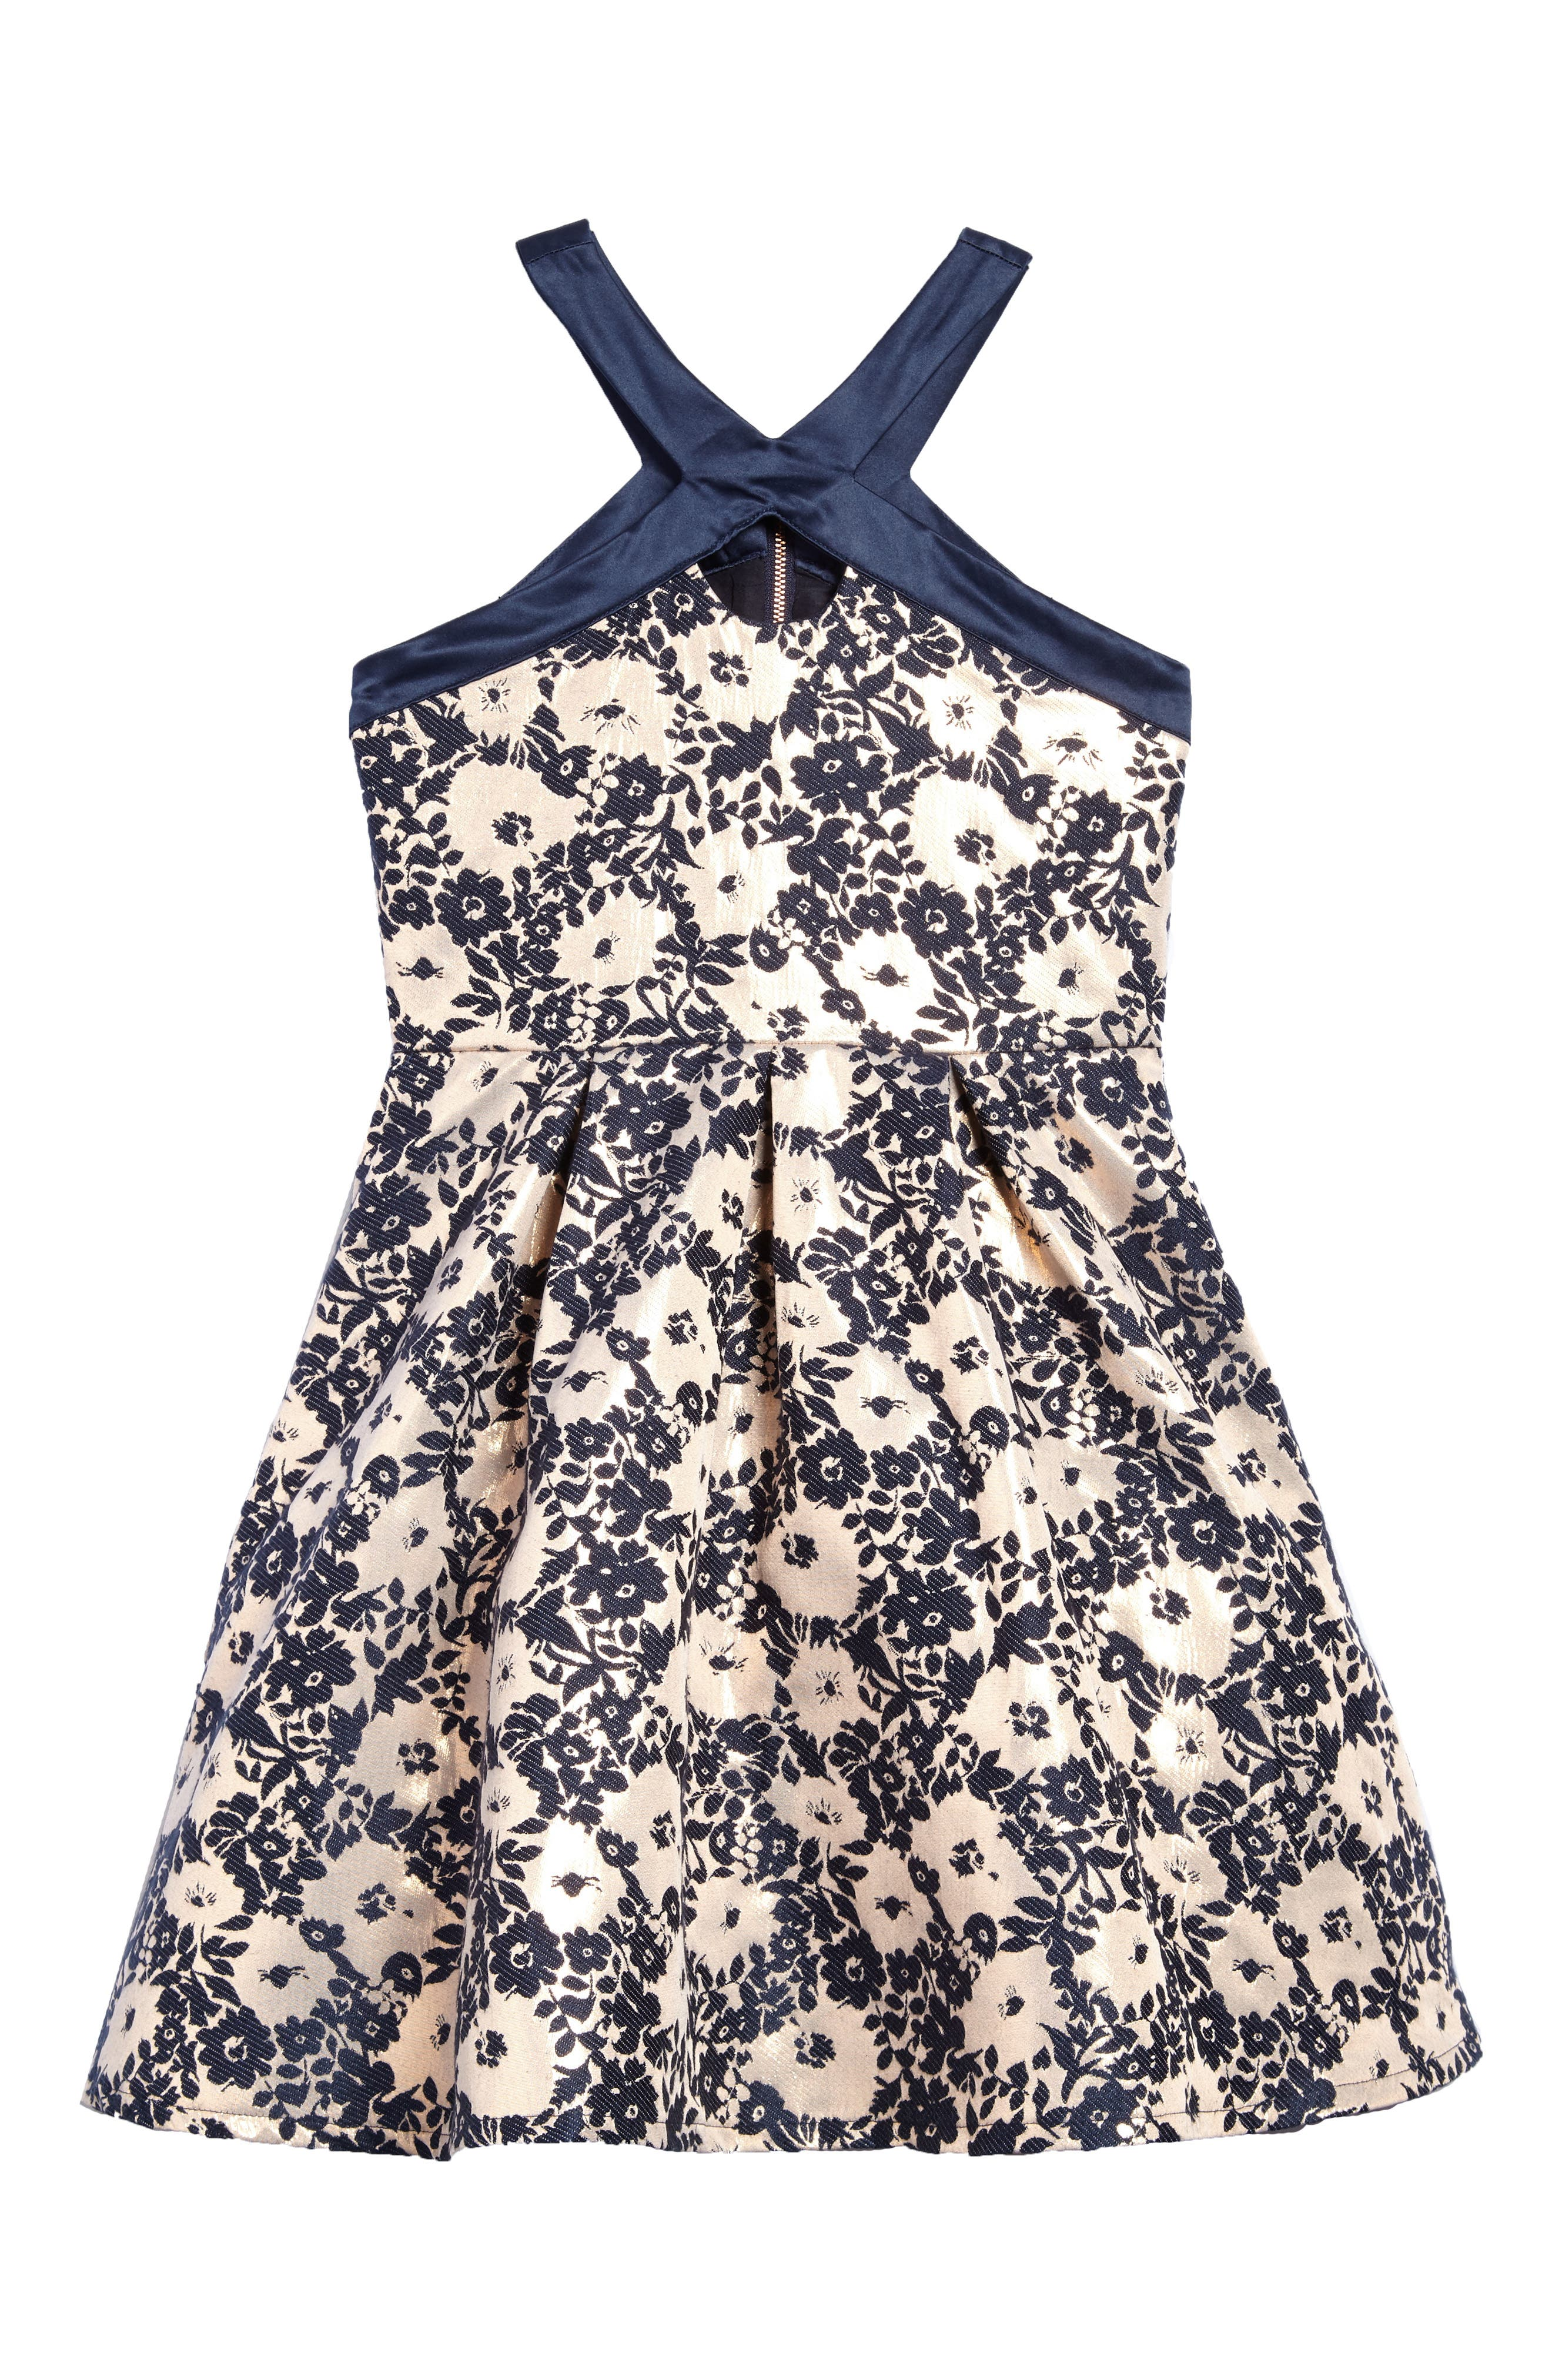 Main Image - BLUSH by Us Angels Floral Brocade Fit & Flare Dress (Big Girls)